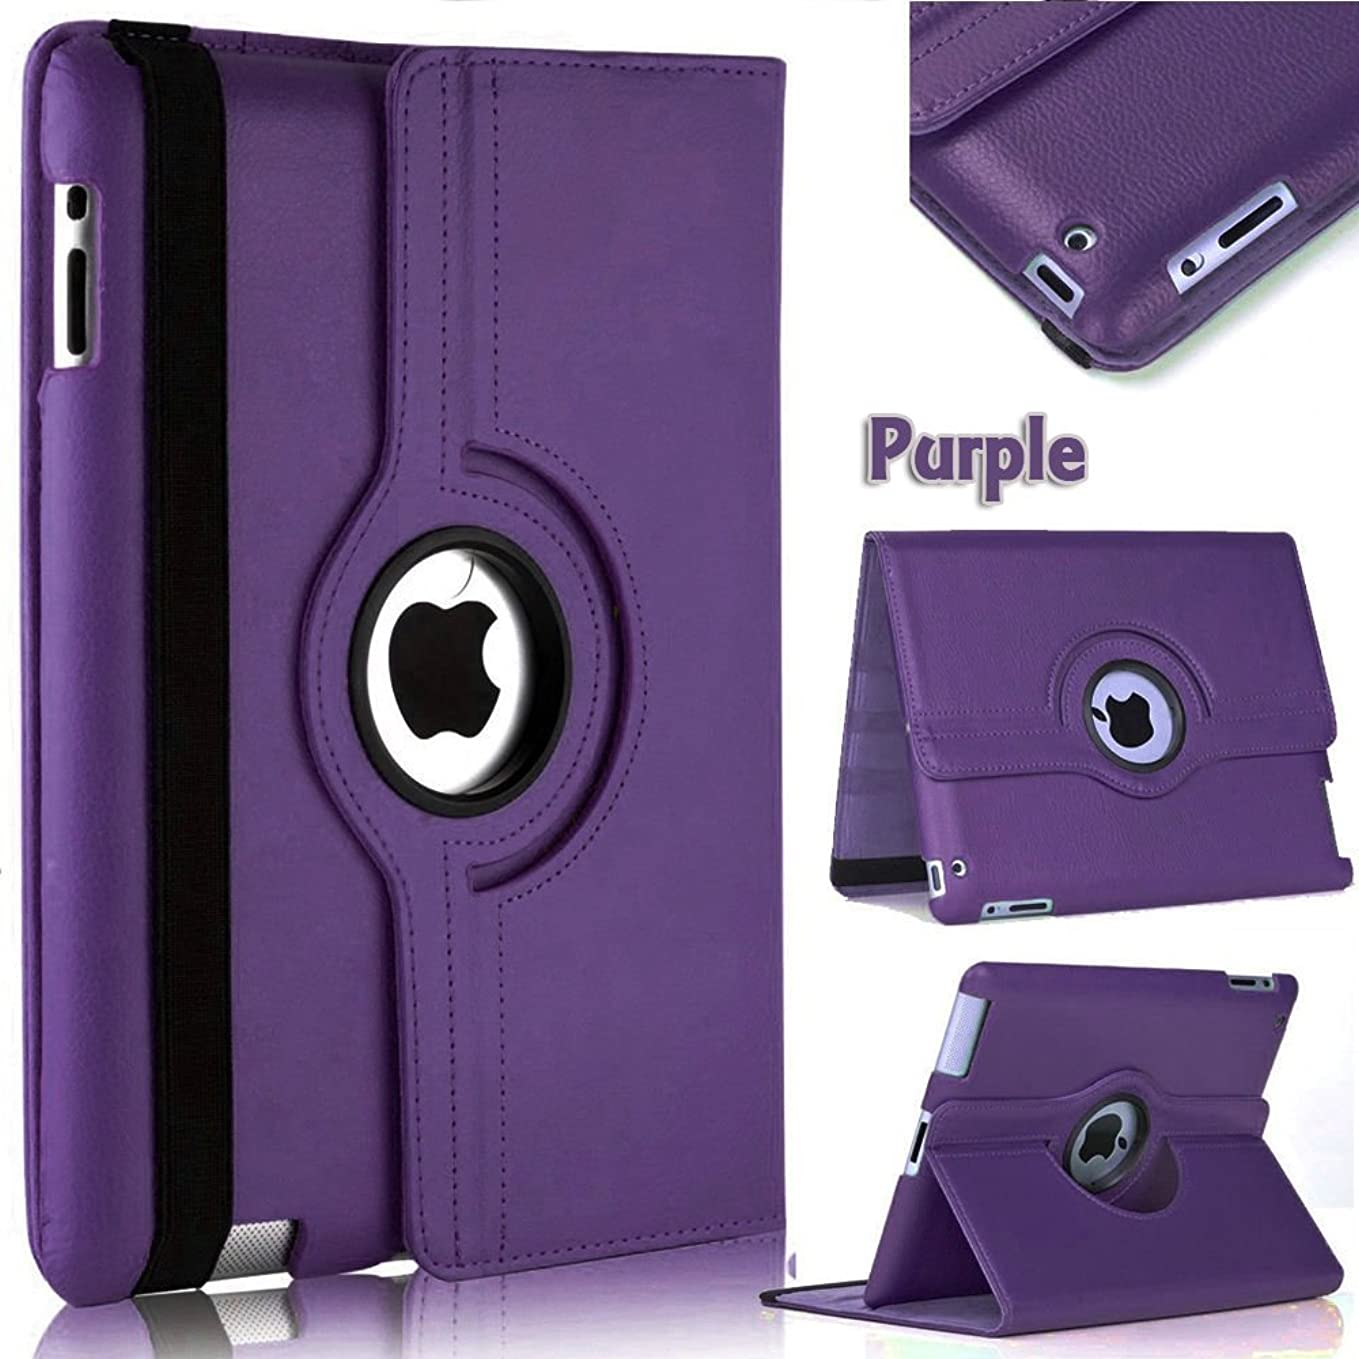 Mecasy_iPad Mini 1 2 3 360 Degree Rotating Stand Leather Case Cover with Auto Sleep USA Seller (Purple) ew3750970653880